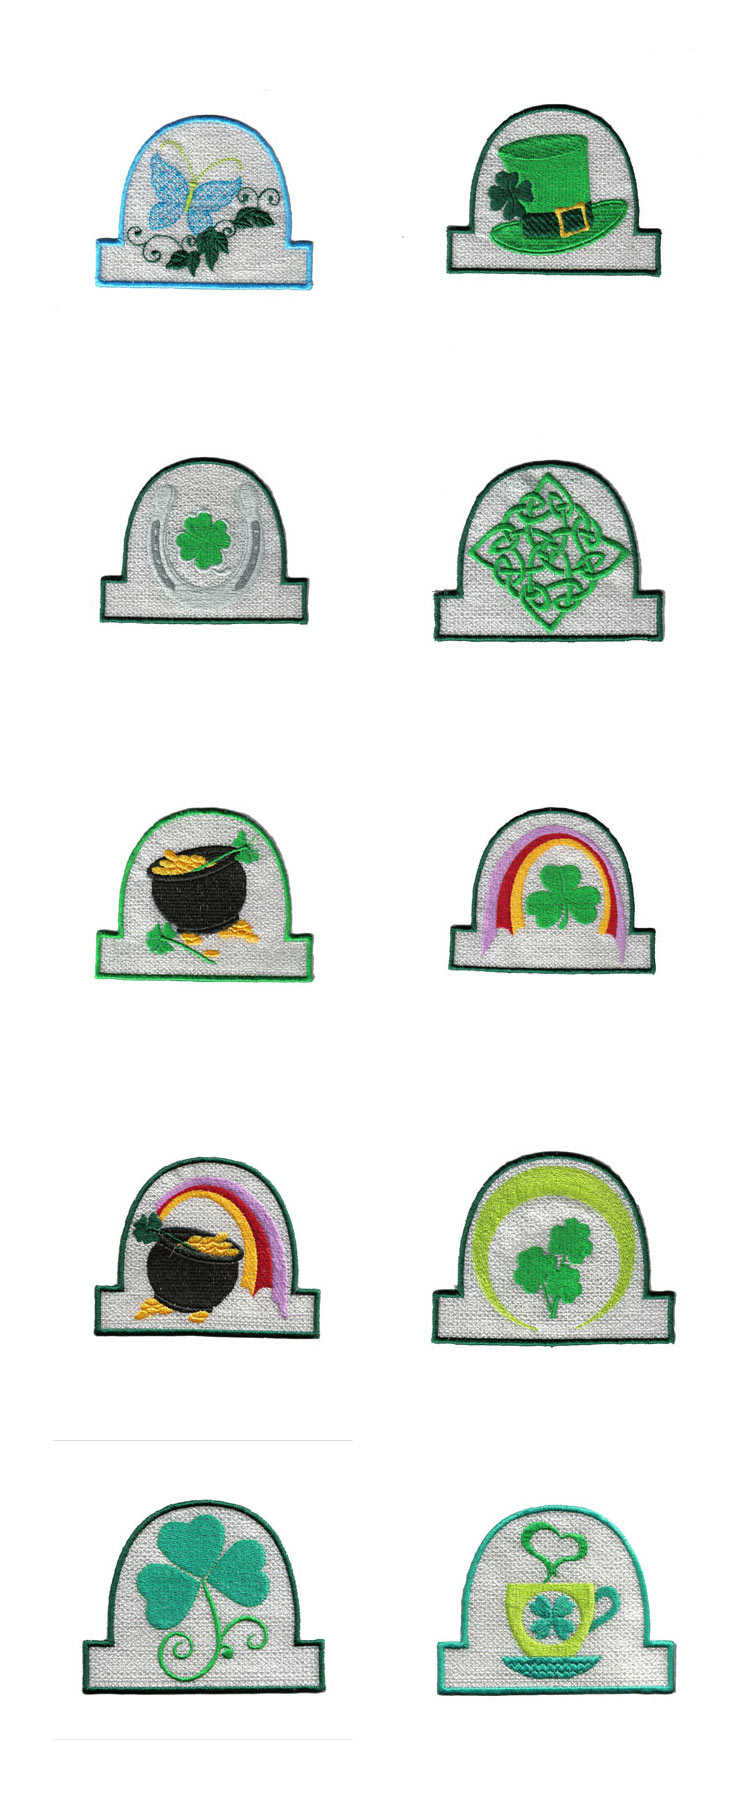 St Patricks Day Tea Light Holders Embroidery Machine Design Details